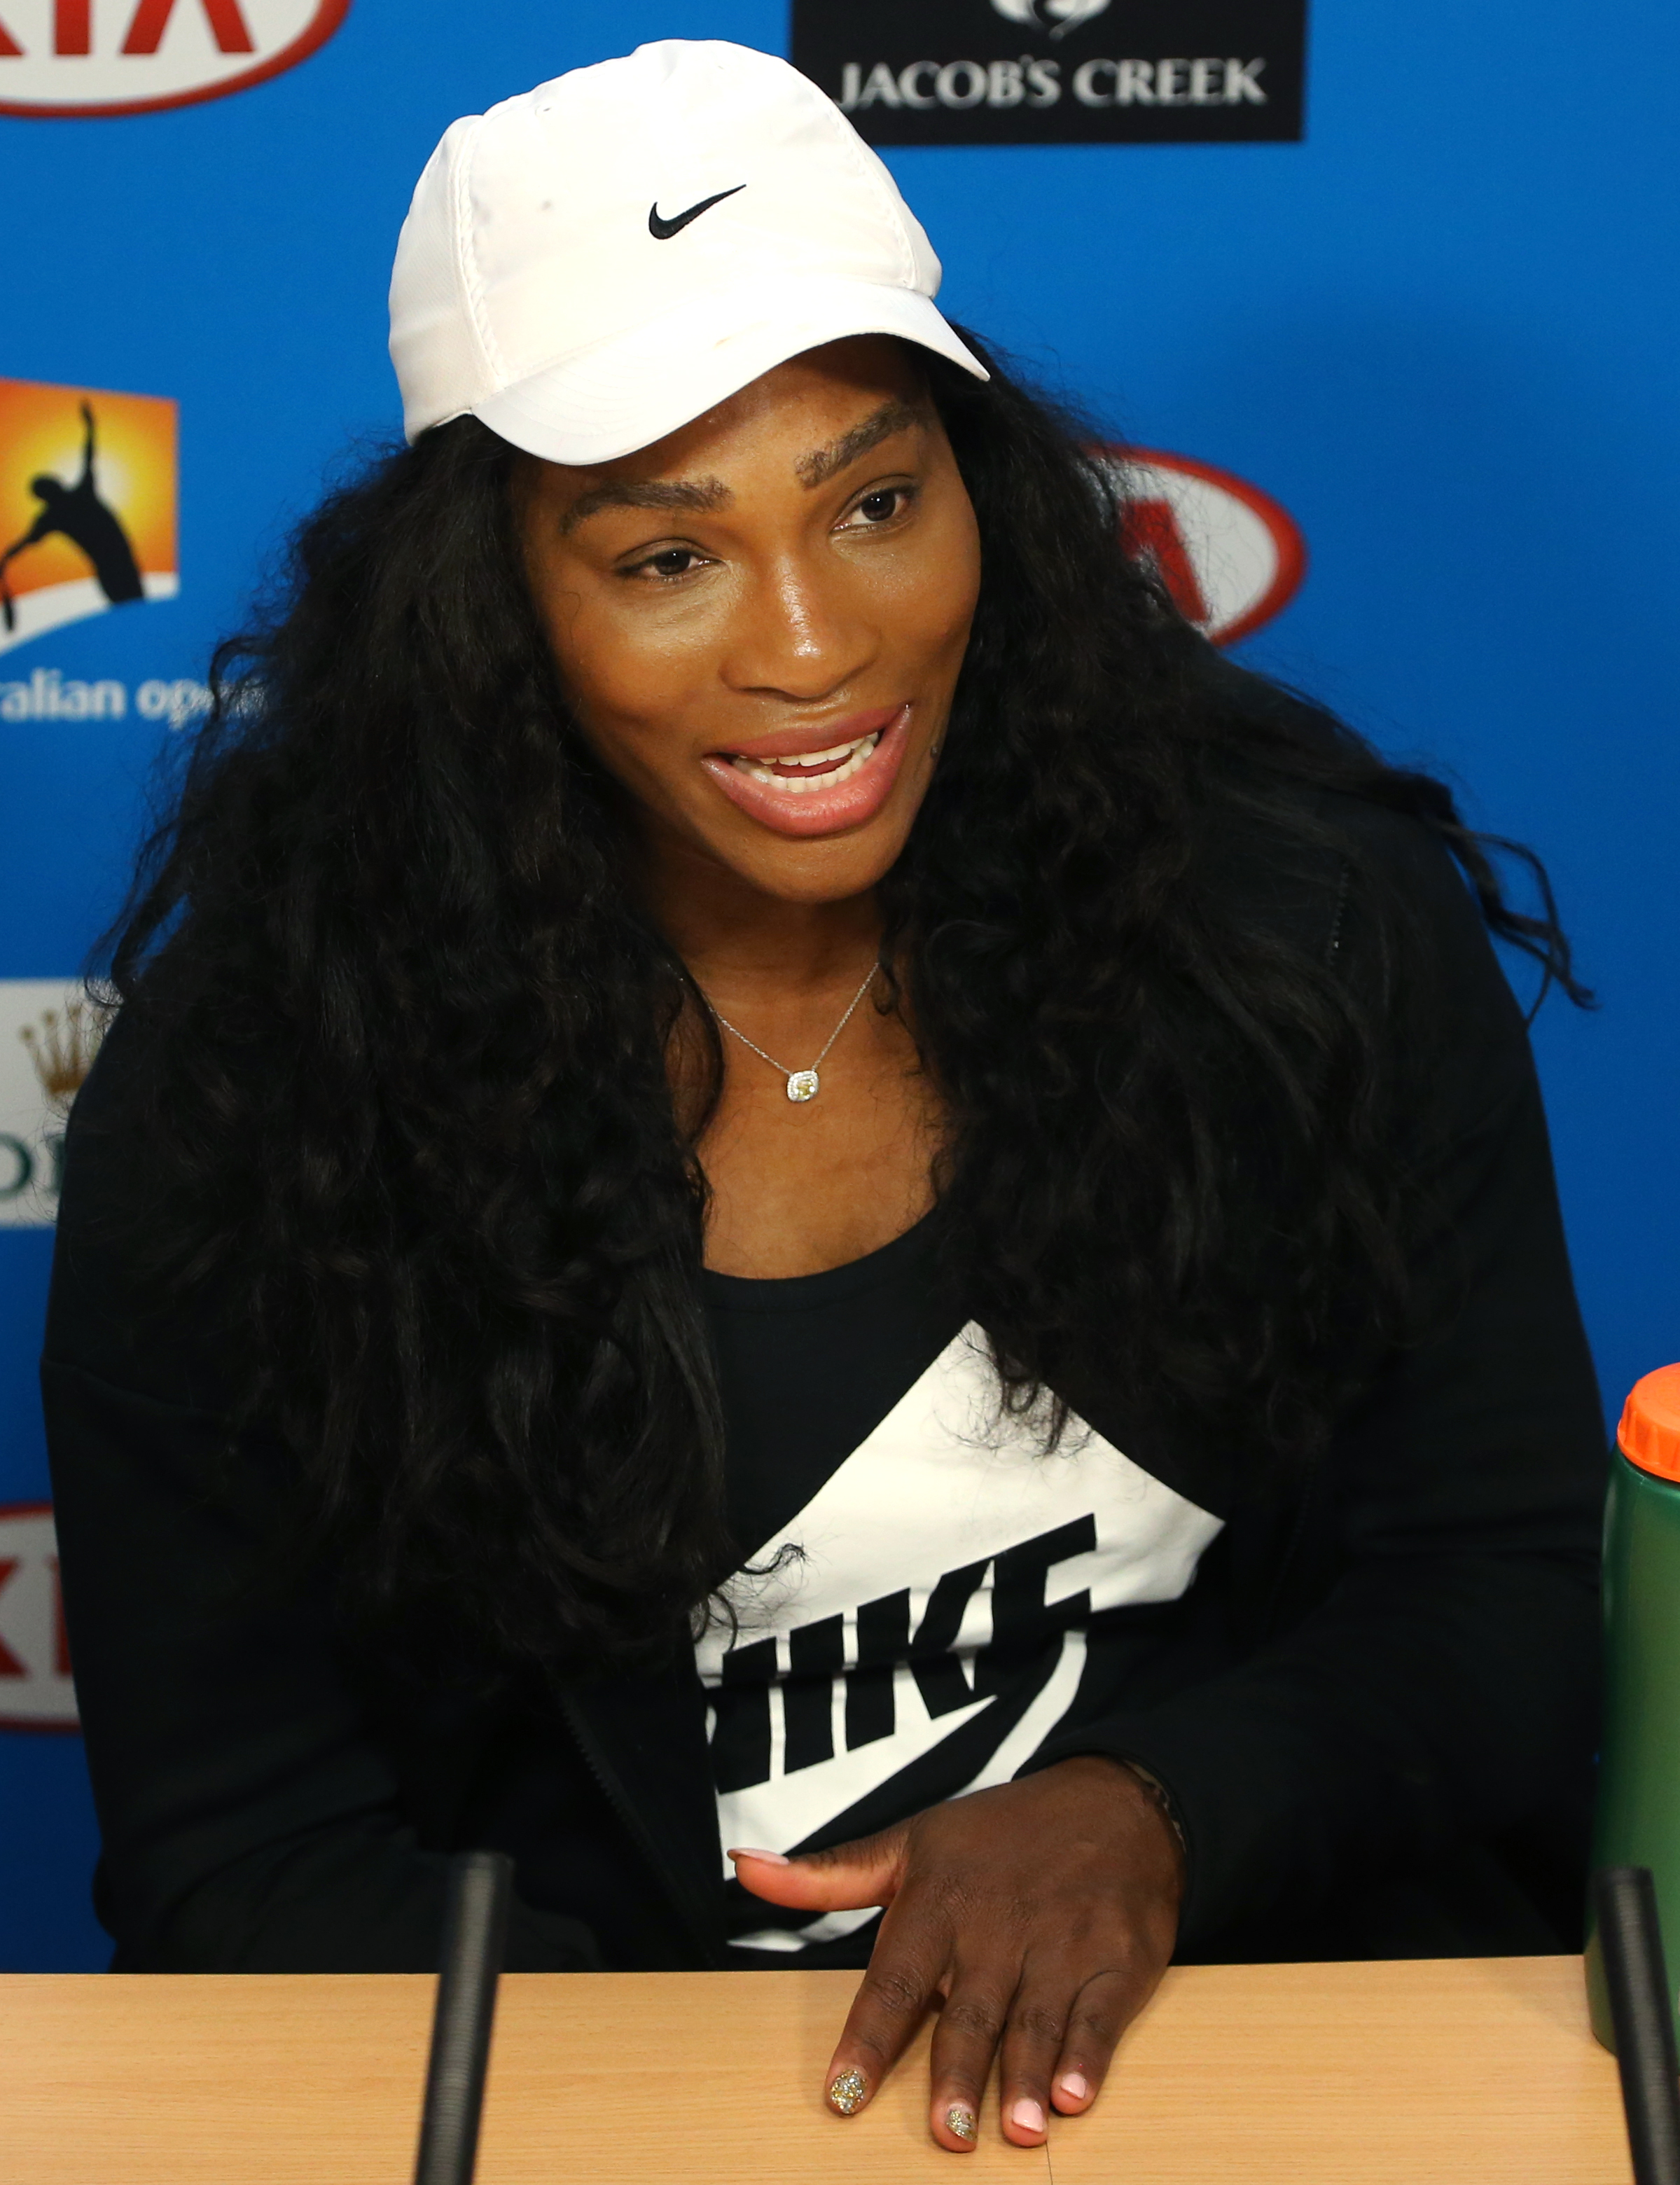 Serena Williams of the United States speaks during a press conference, ahead of the Australian Open tennis championships in Melbourne, Australia, Saturday, Jan. 16, 2016.(AP Photo/Rick Rycroft)